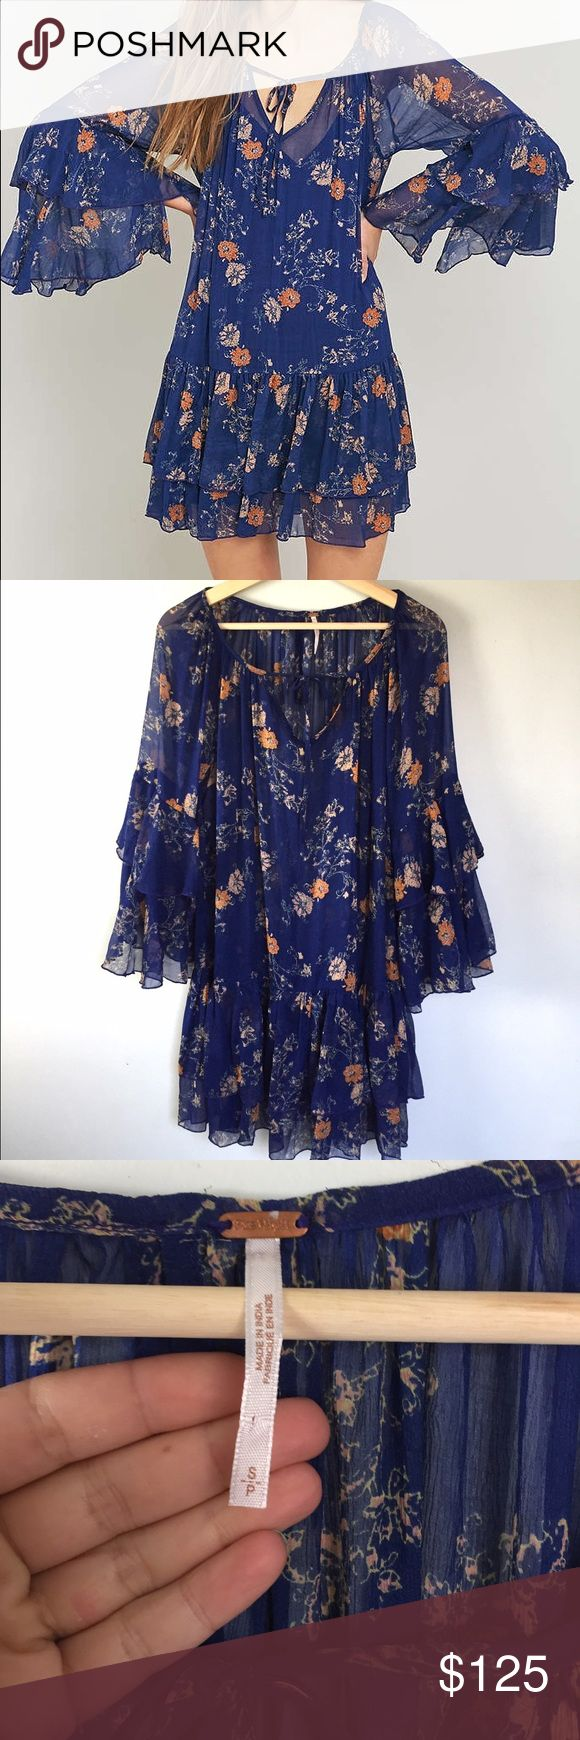 HPFree People SALE!!!!!Sunsetter dress Beautiful + Gorgeous Sunsetter floral dress by Free People in blue combo. No flaws. Size small. Tiered sleeves. Missing the slip but you can use your own. (This is reflected in price) dress is in mint condition with no stains, holes or rips. Cleaning closet and it's got to go. Free People Dresses Mini